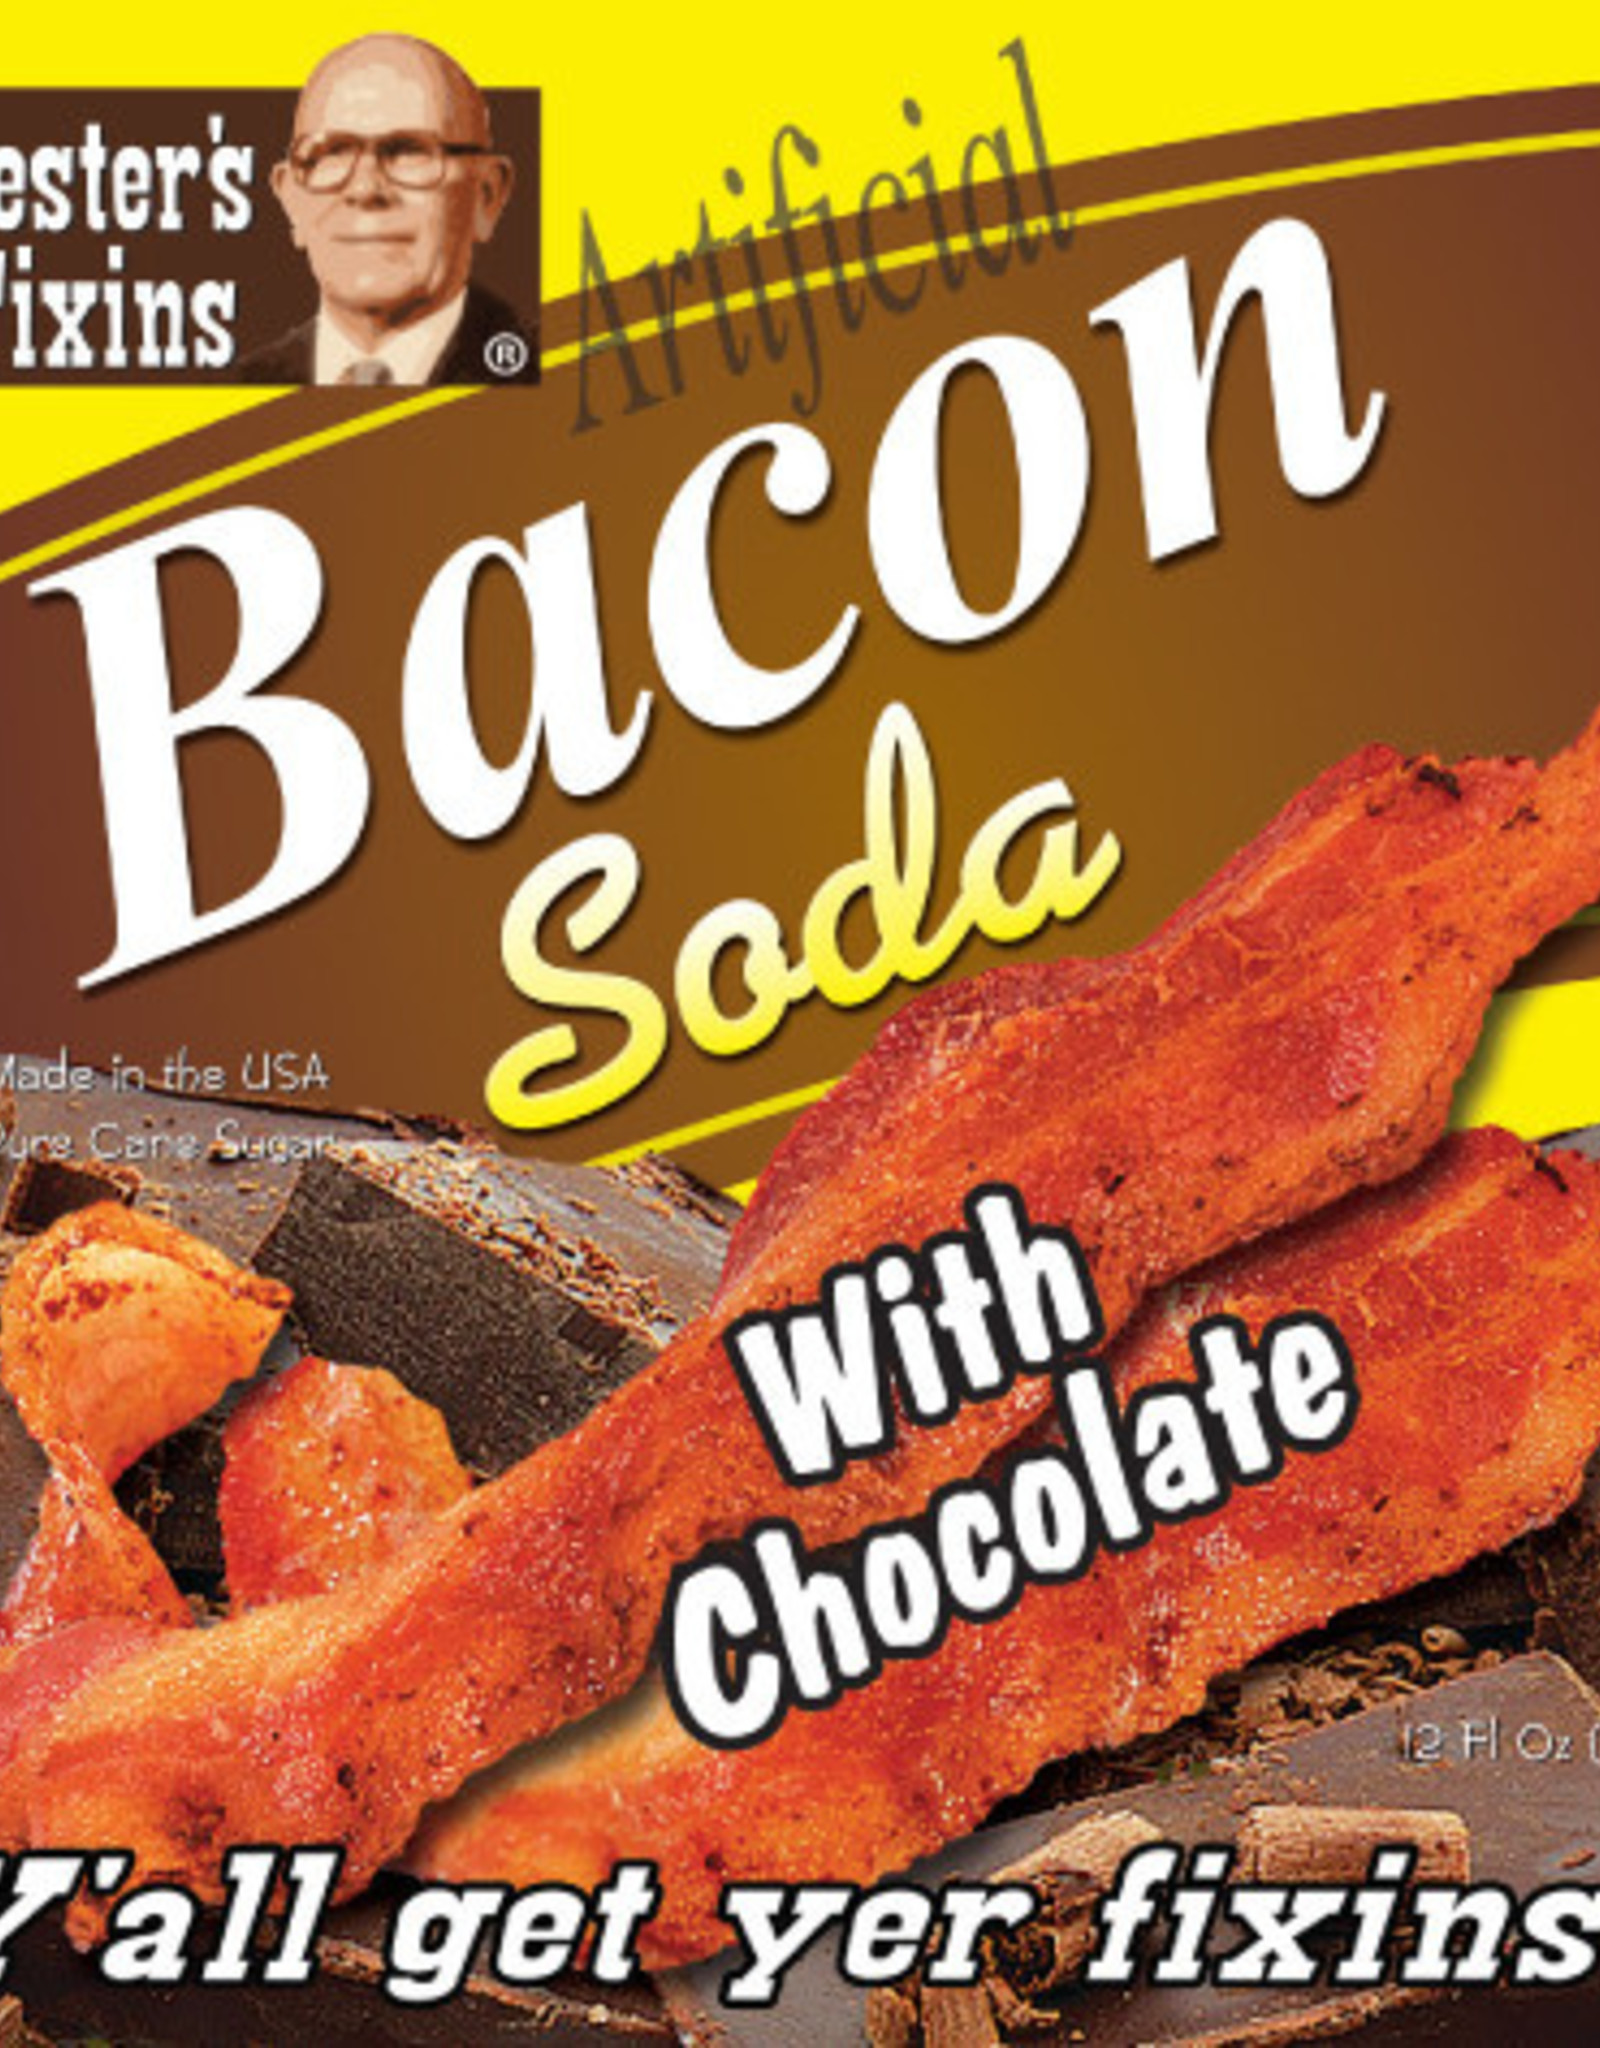 Rocket Fizz Lester's Fixins Bacon with Chocolate Soda